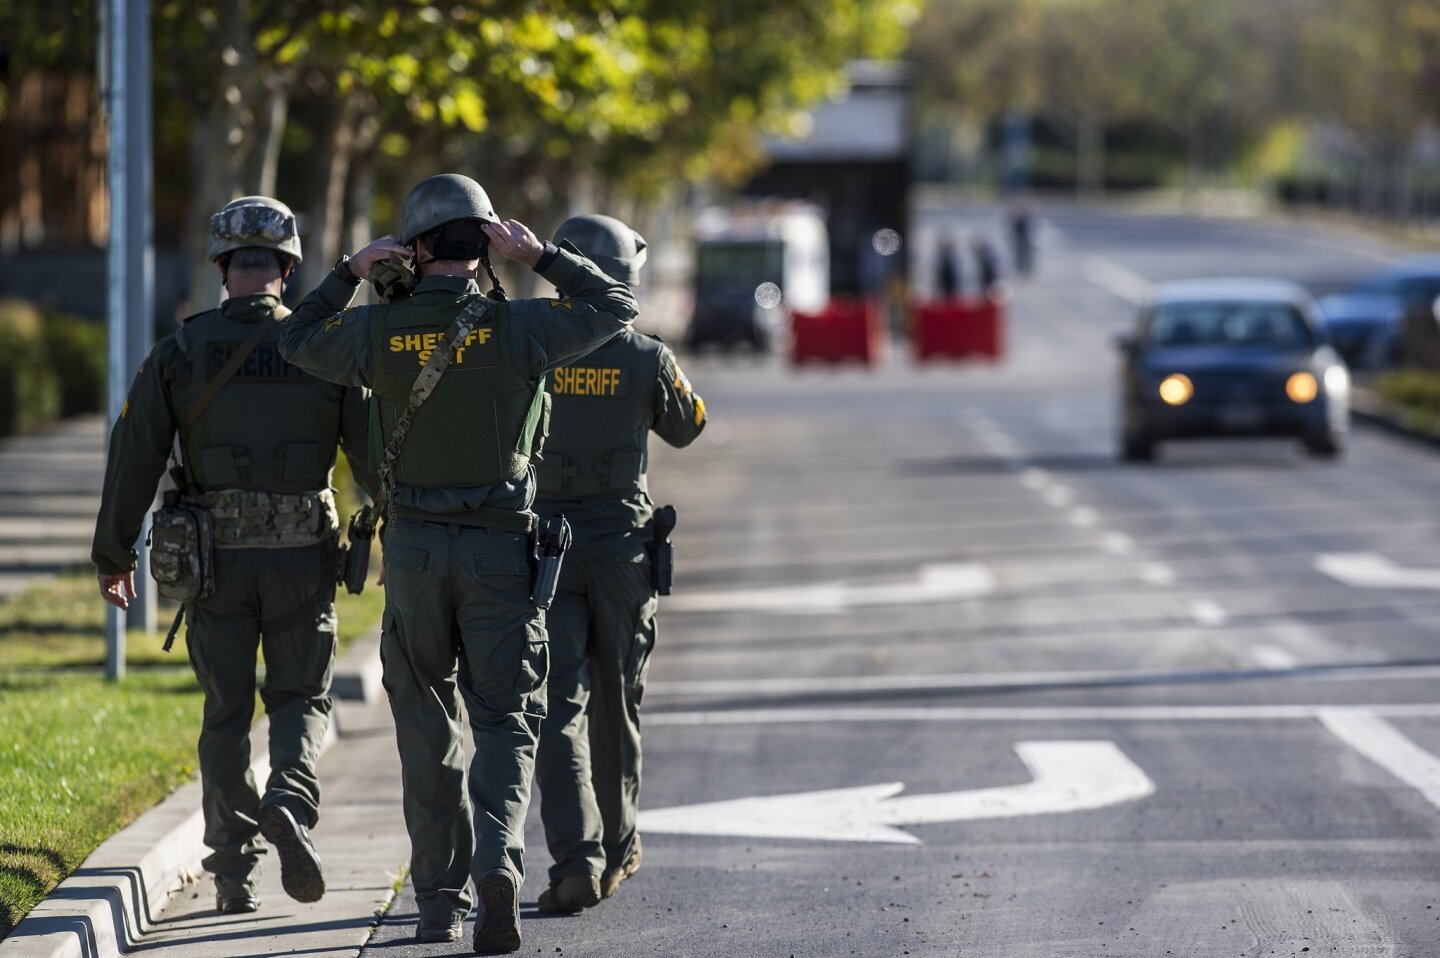 A SWAT team from the Merced County Sheriff's Department enter the UC Merced campus after reports of stabbings. An assailant stabbed four people on central California campus before being fatally shot by police.